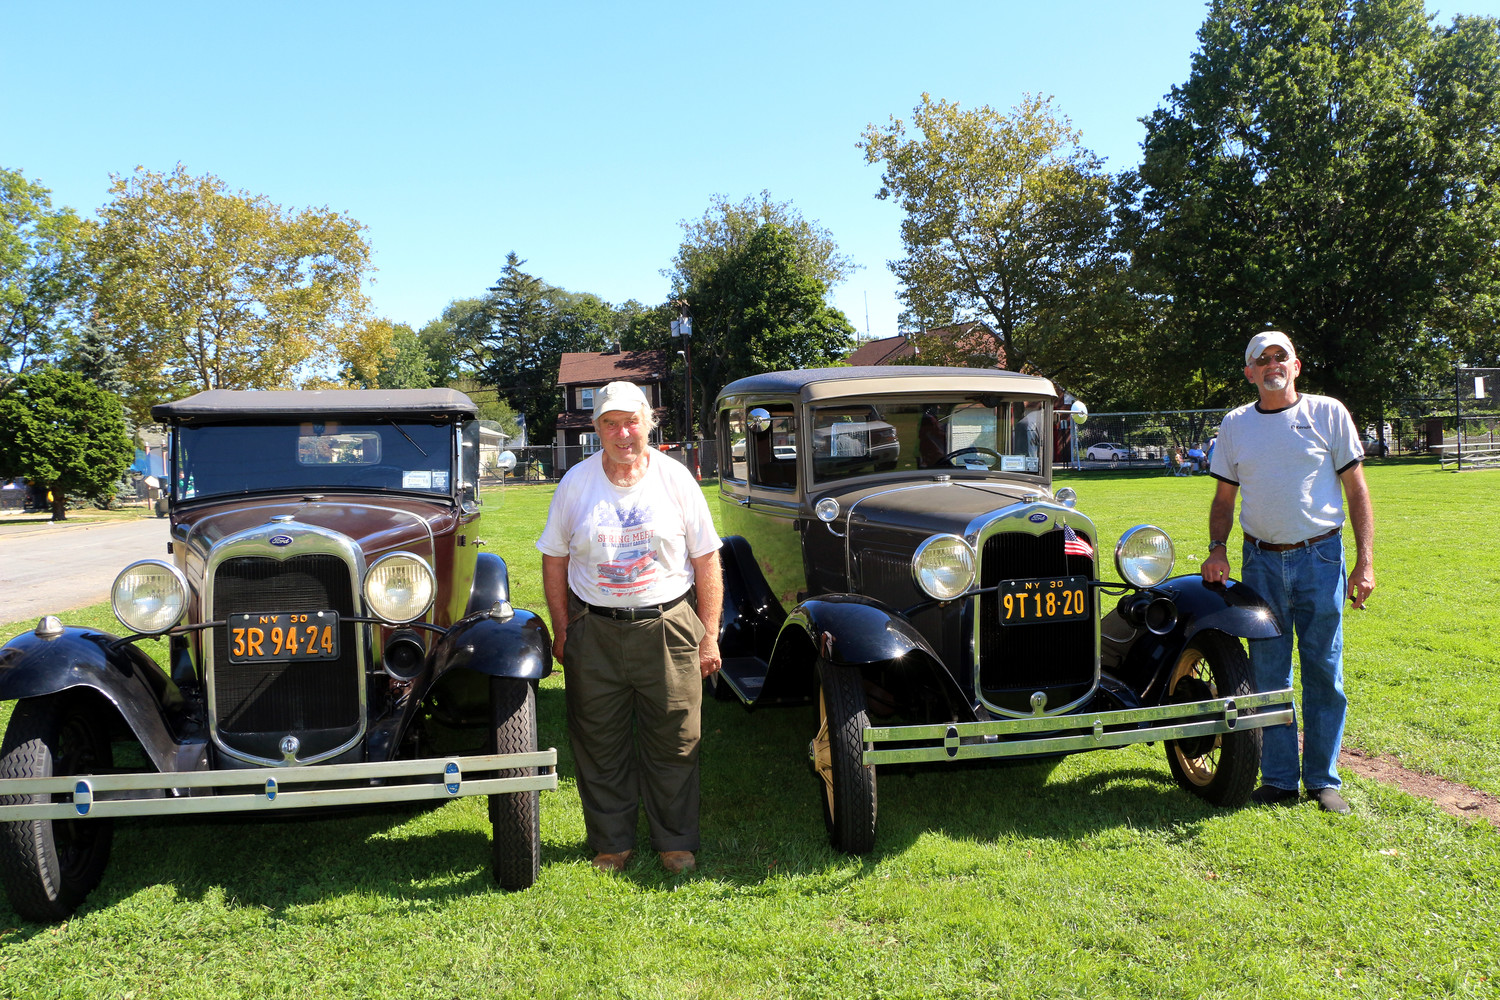 Harry Verity, left, and David Siegel showed off their Model A Fords, which were two of about 60 old cars being displayed at the Expo.